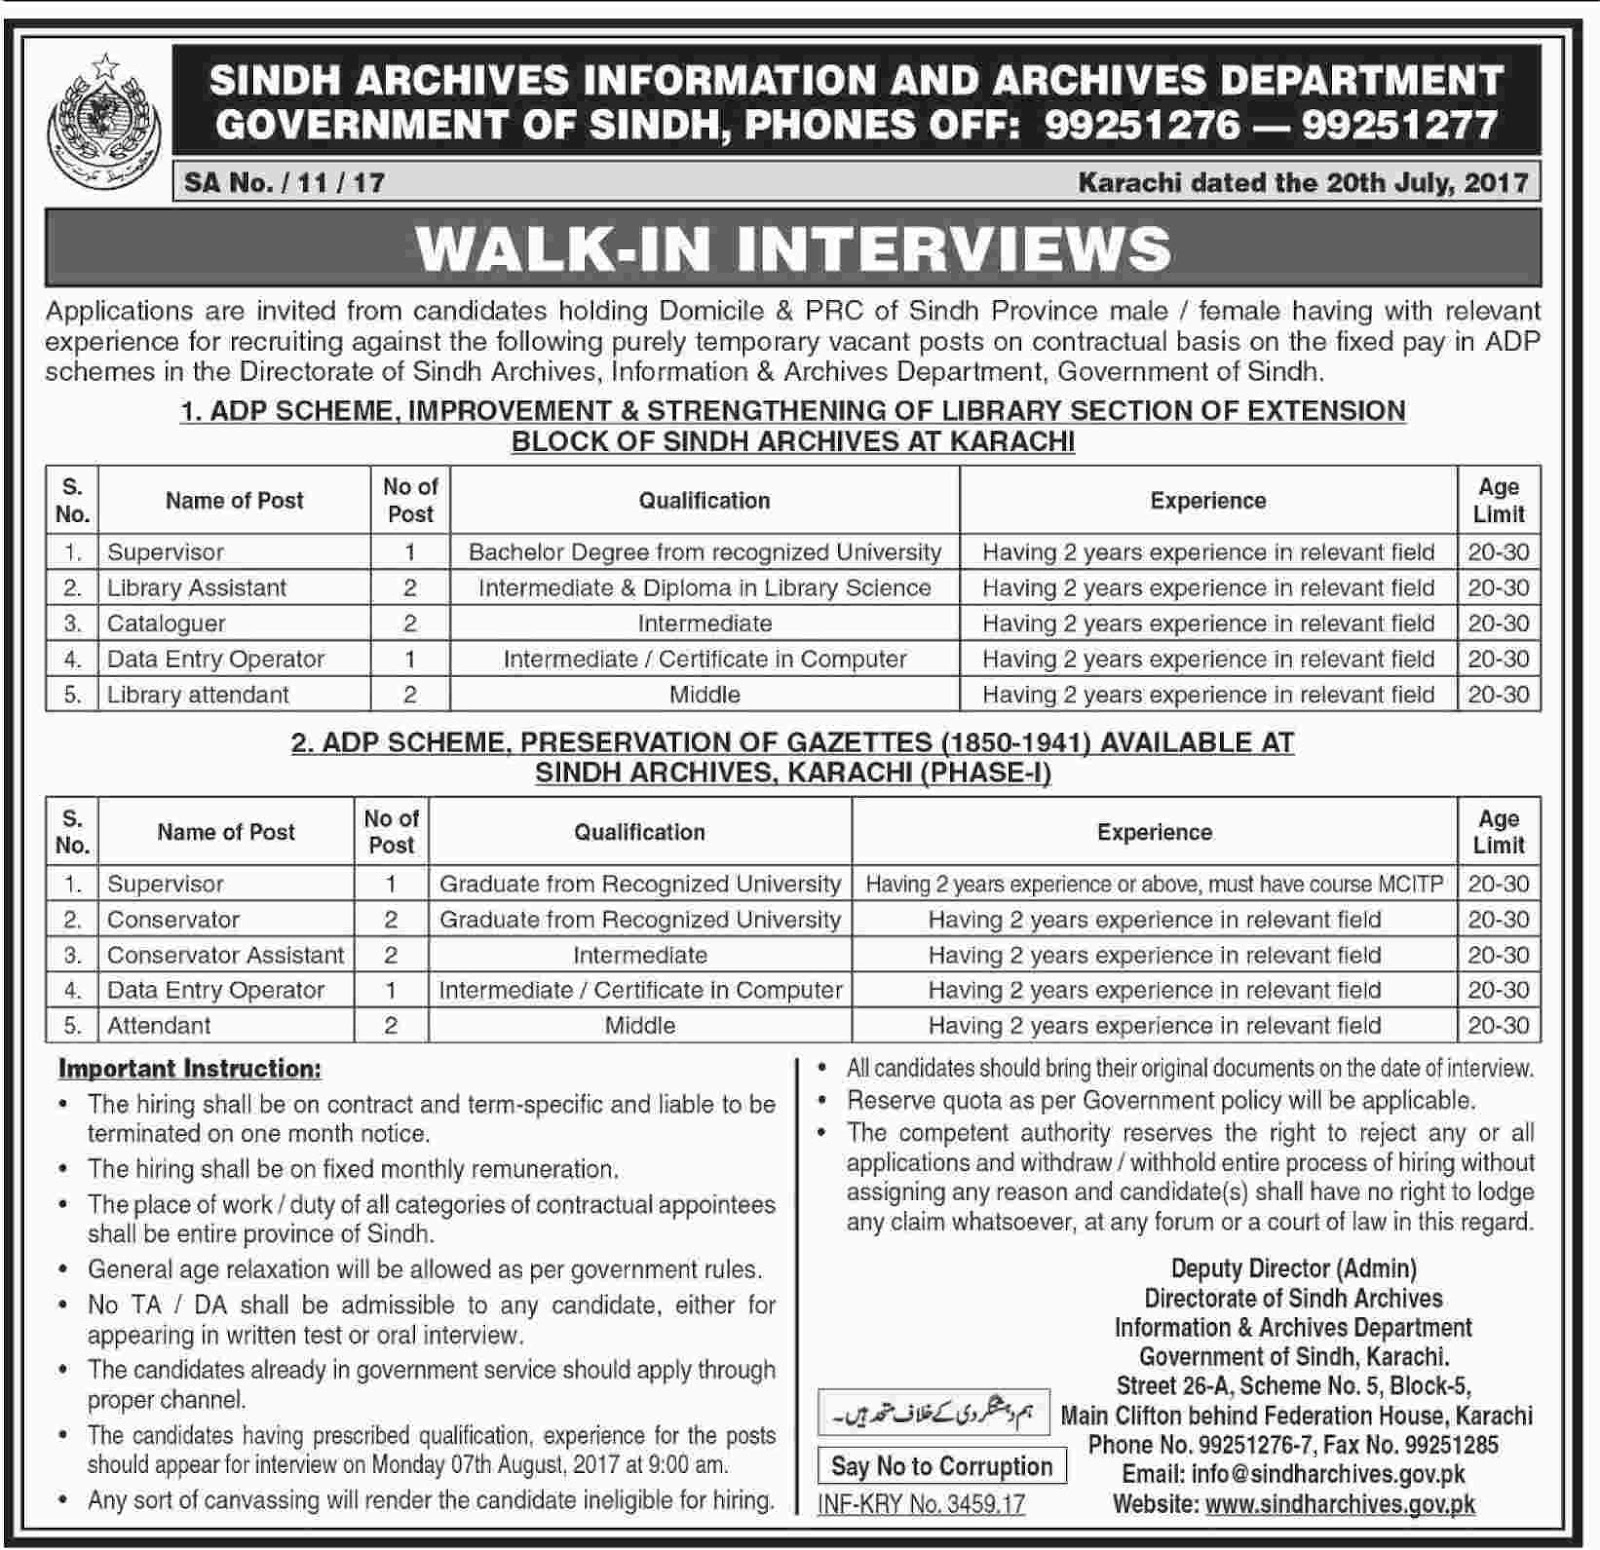 Jobs In Sindh Archives Information And Archives Department July 2017